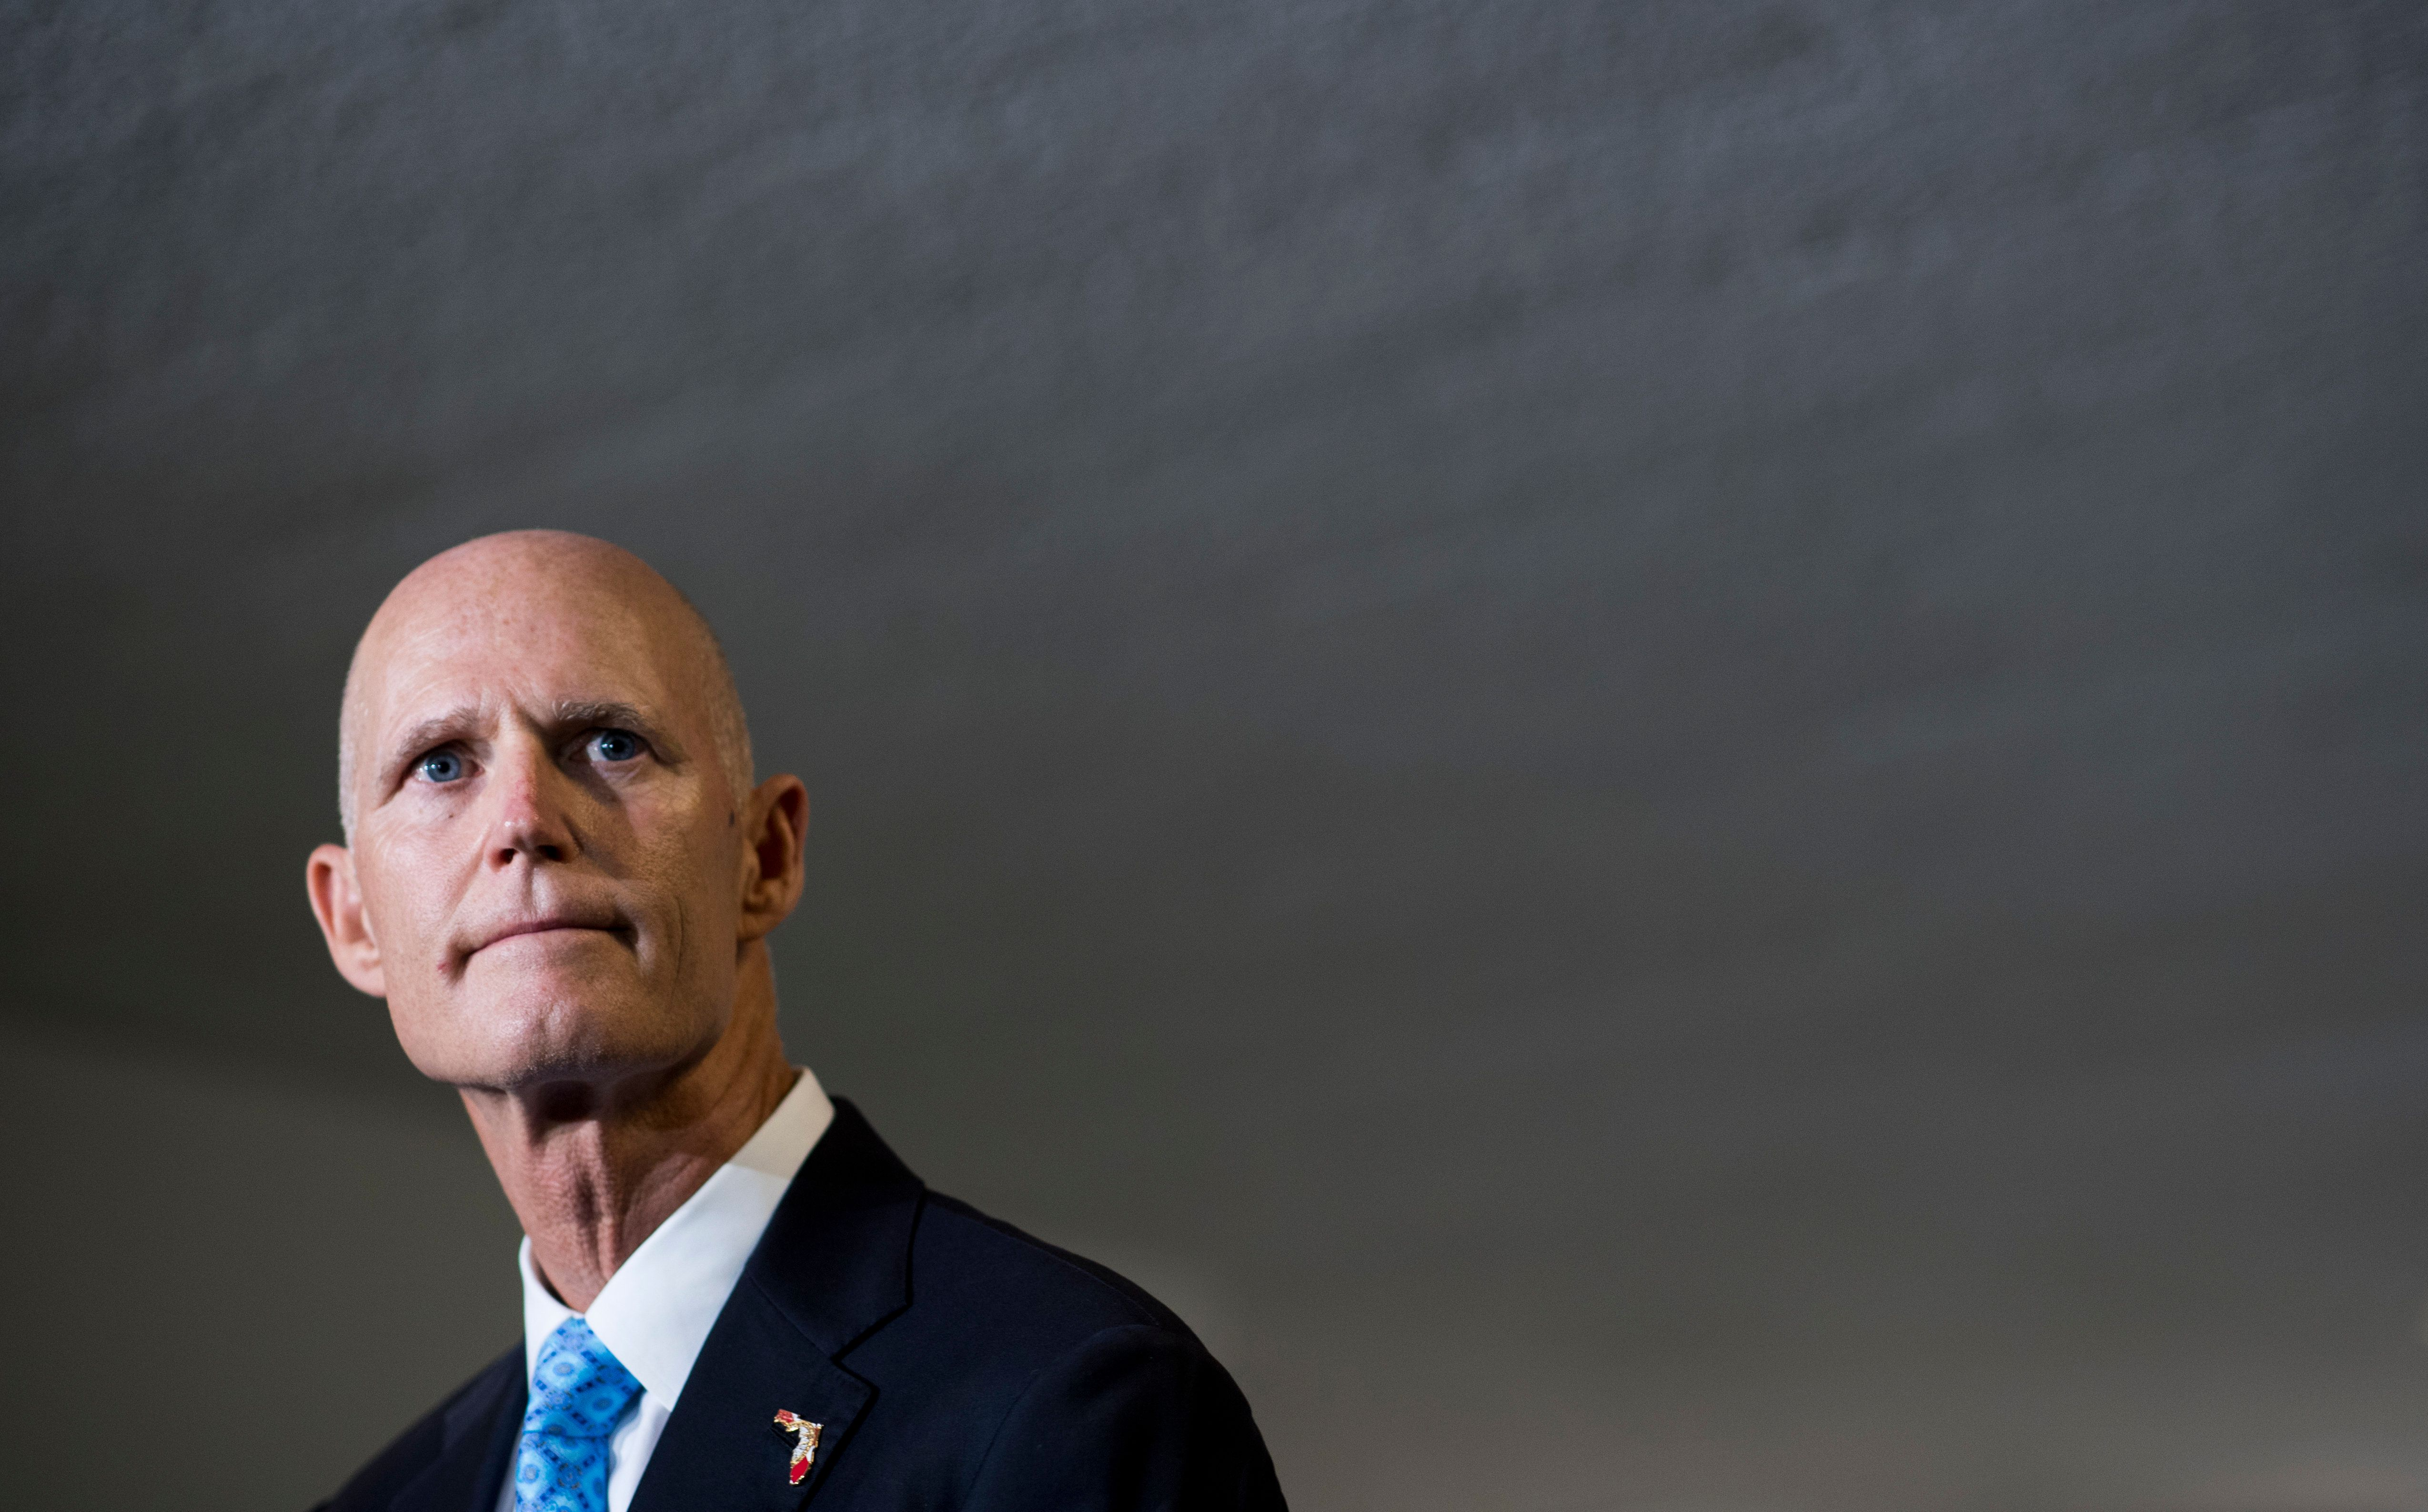 Florida Gov. Rick Scott (R) won't extend the state's voter registration deadline as an enormous storm is set to bear down on